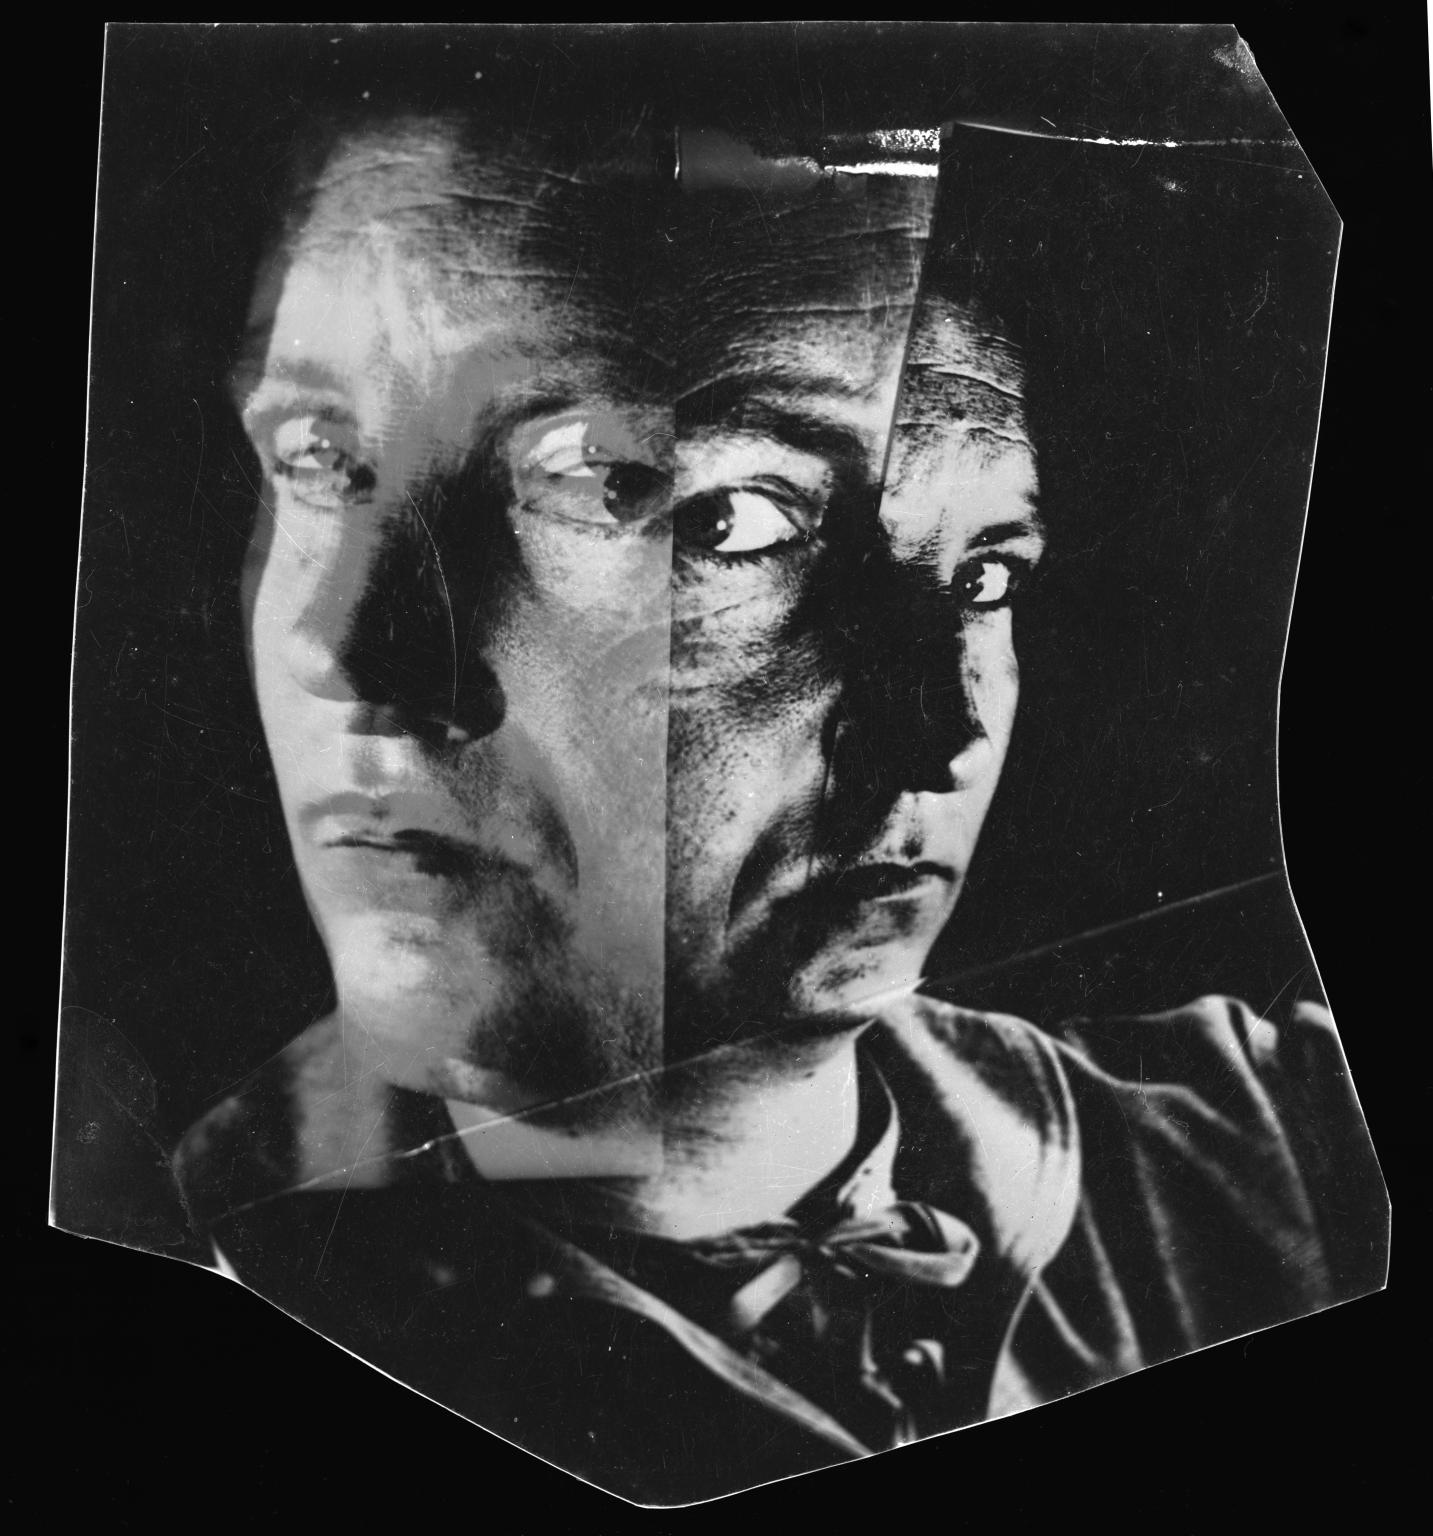 Photograph showing distorted image of Nigel Henderson by Nigel Henderson 1917-1985; © Nigel Henderson Estate, Photographic Rights © Tate 2014, CC-BY-NC-ND 3.0 (Unported), http://www.tate.org.uk/art/archive/TGA-9211-8-1-17-3-1